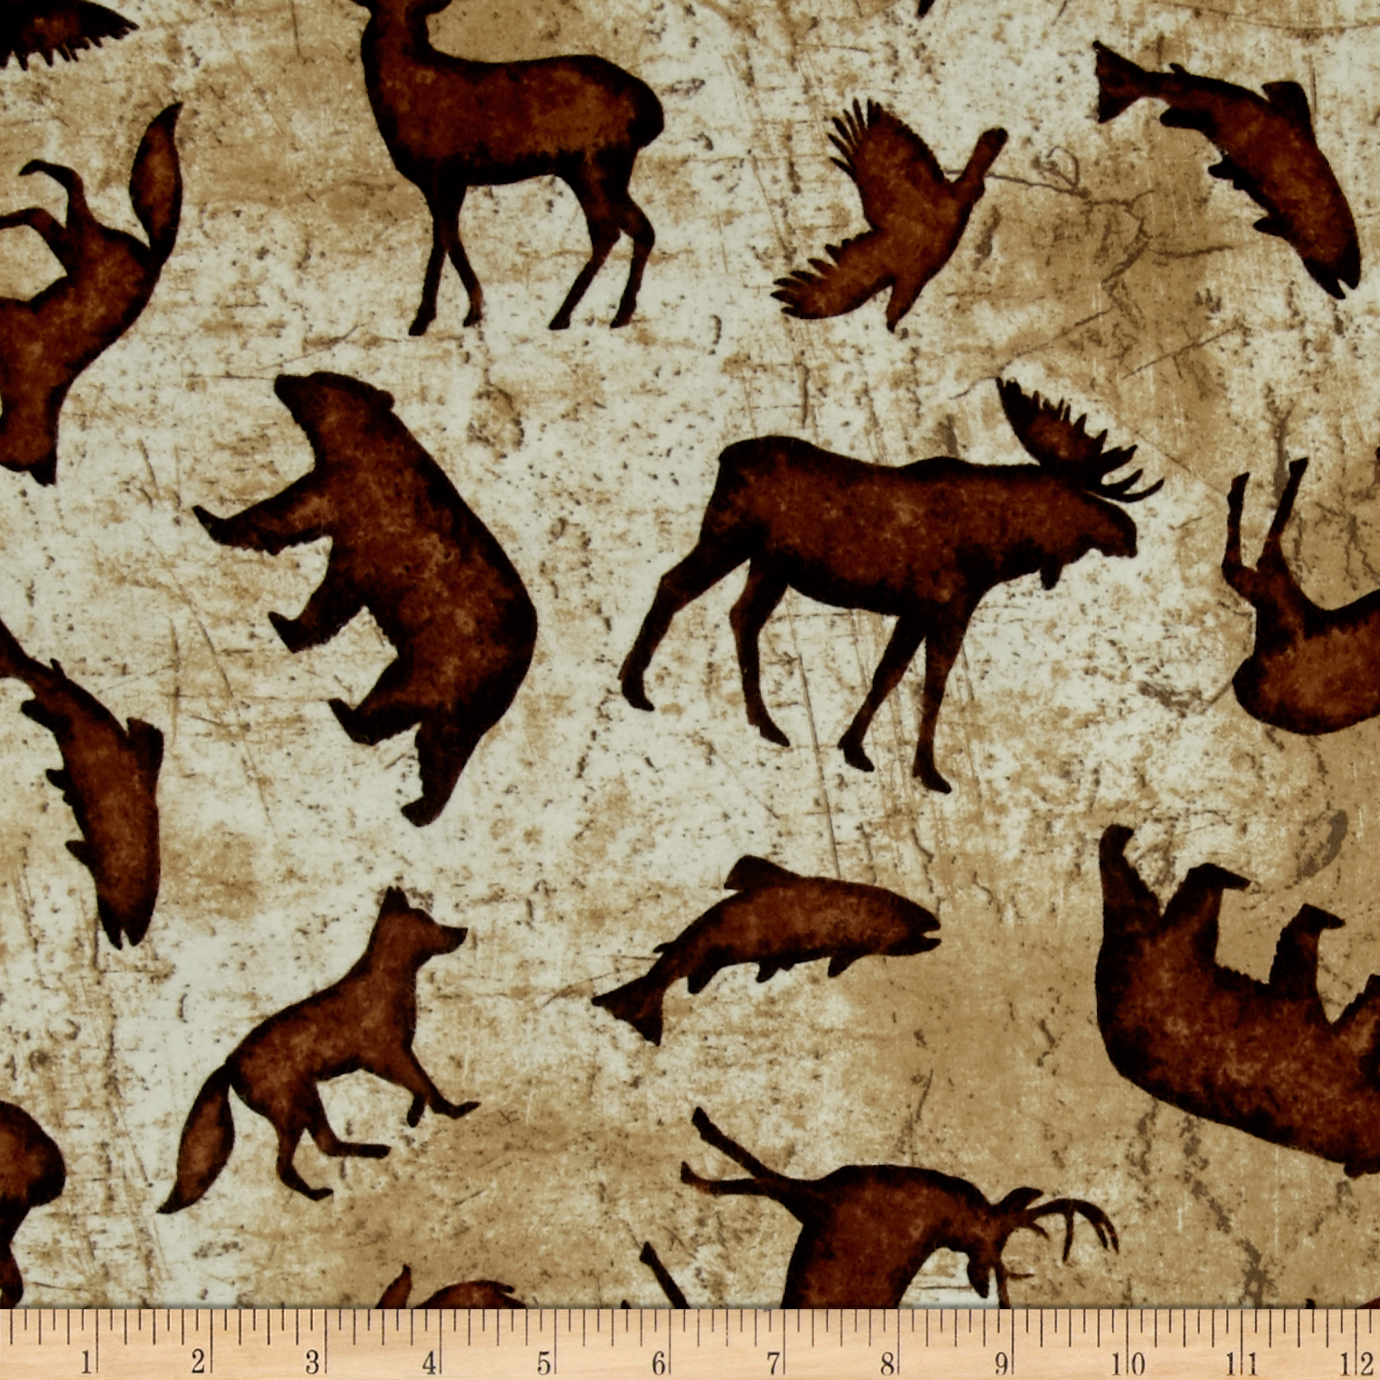 Wilderness Flannel Toss Animals Butter Fabric by Clothworks in USA